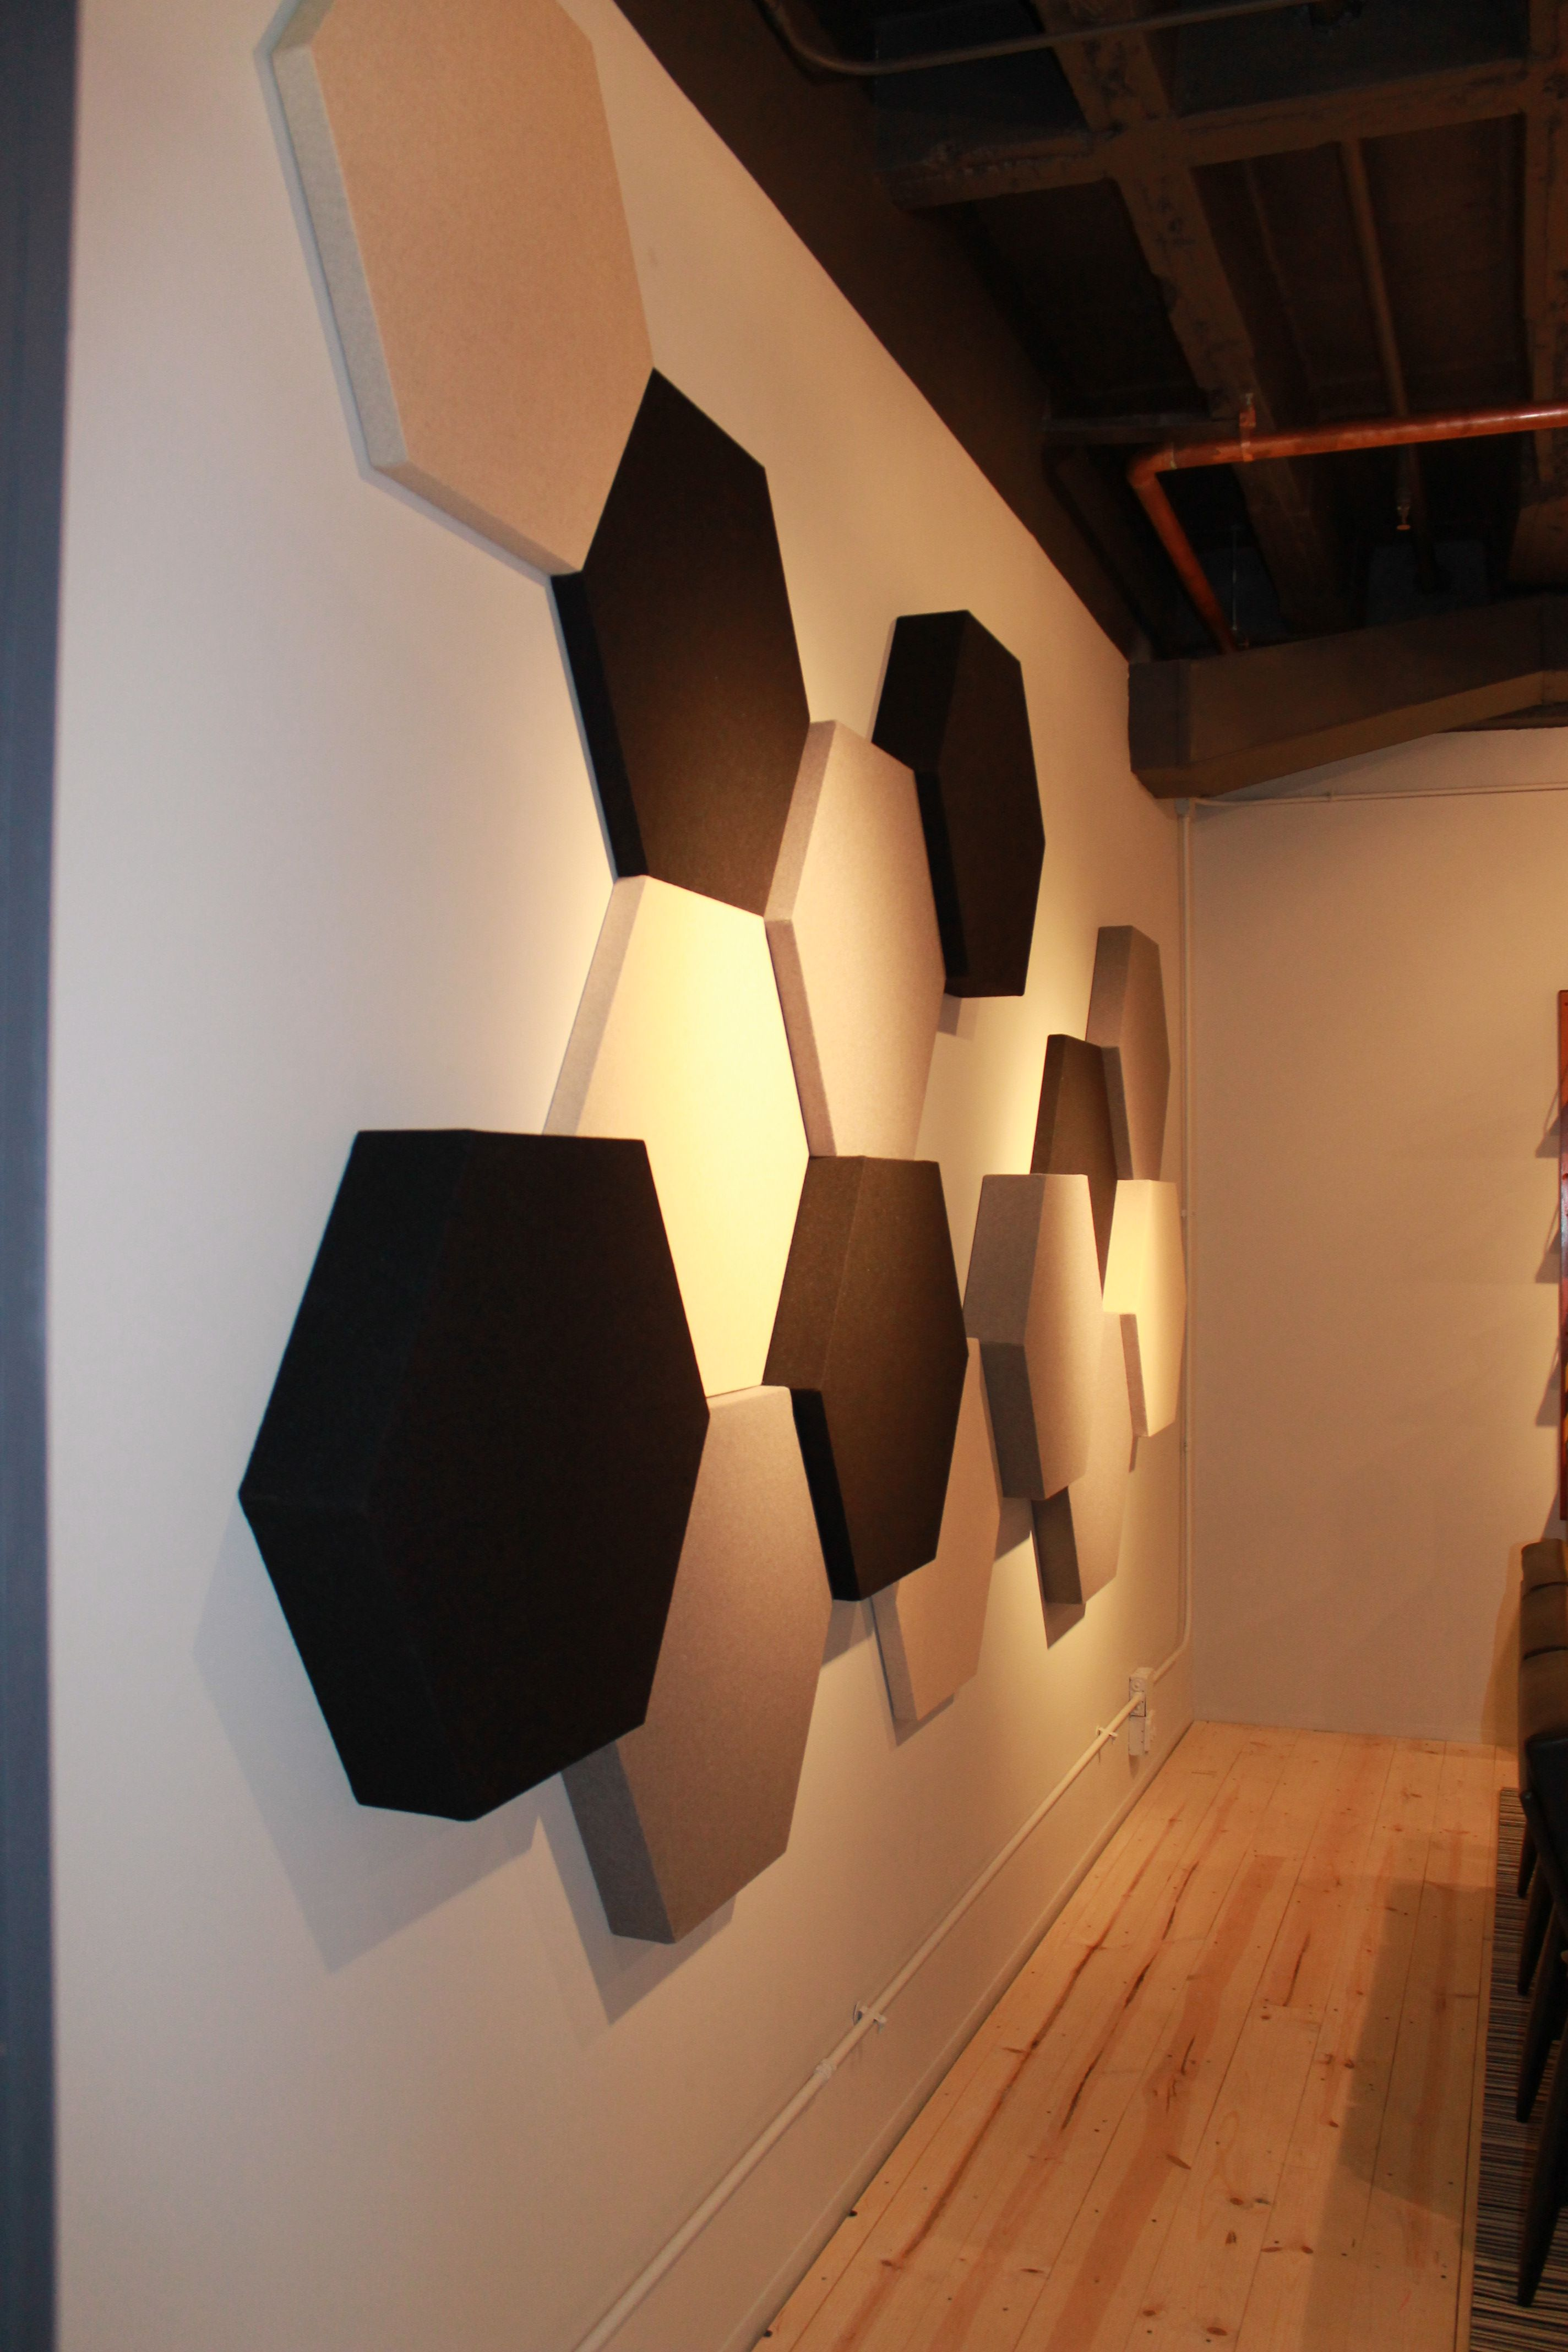 Buzzispace Www Coussonsgroup Com Acoustic Wall Panels Acoustic Wall Wall Paneling